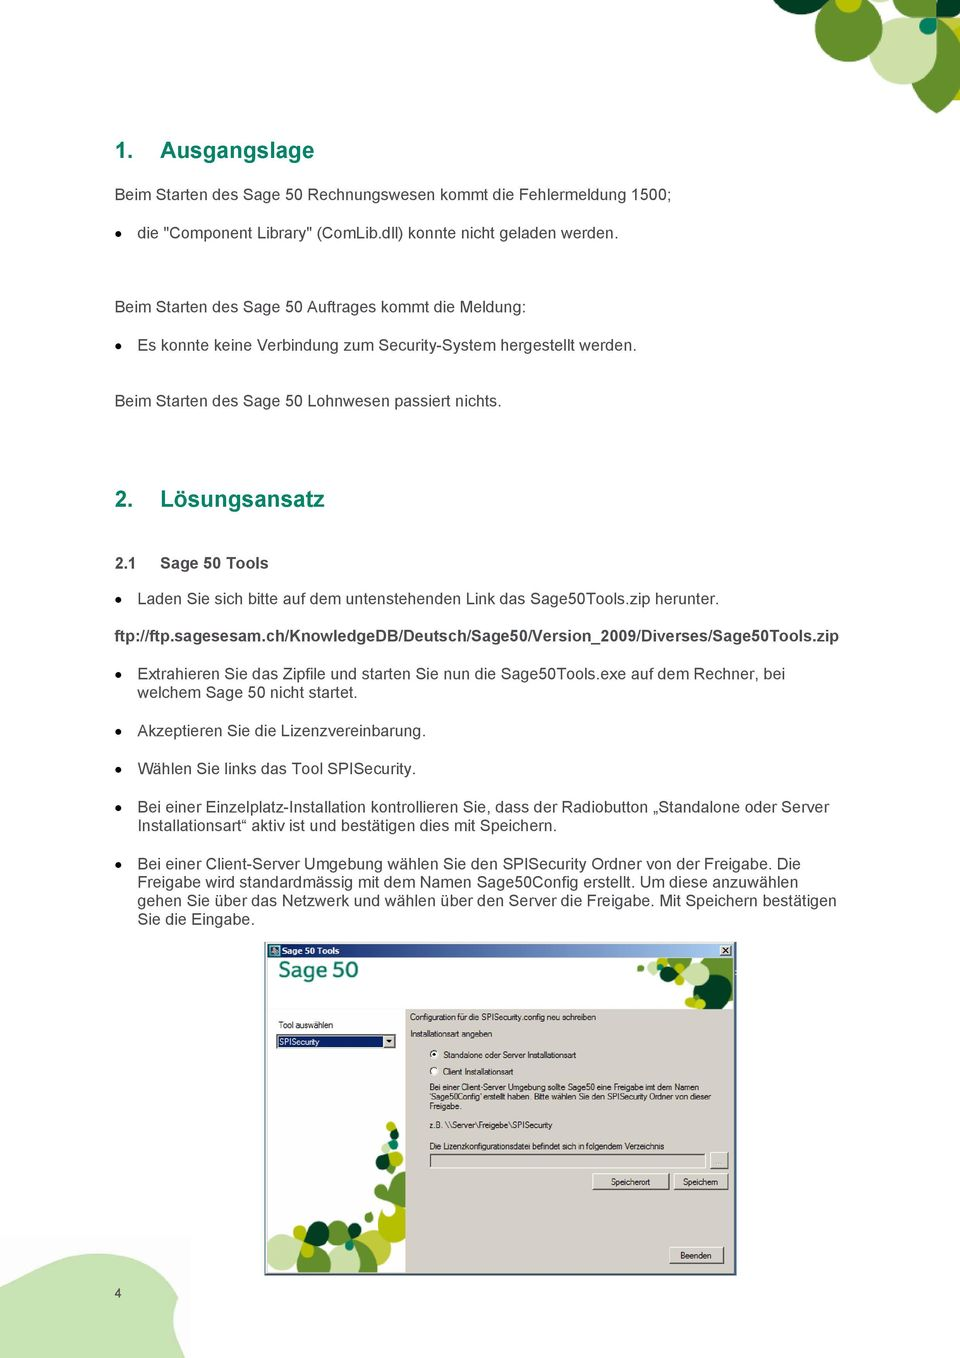 1 Sage 50 Tools Laden Sie sich bitte auf dem untenstehenden Link das Sage50Tools.zip herunter. ftp://ftp.sagesesam.ch/knowledgedb/deutsch/sage50/version_2009/diverses/sage50tools.